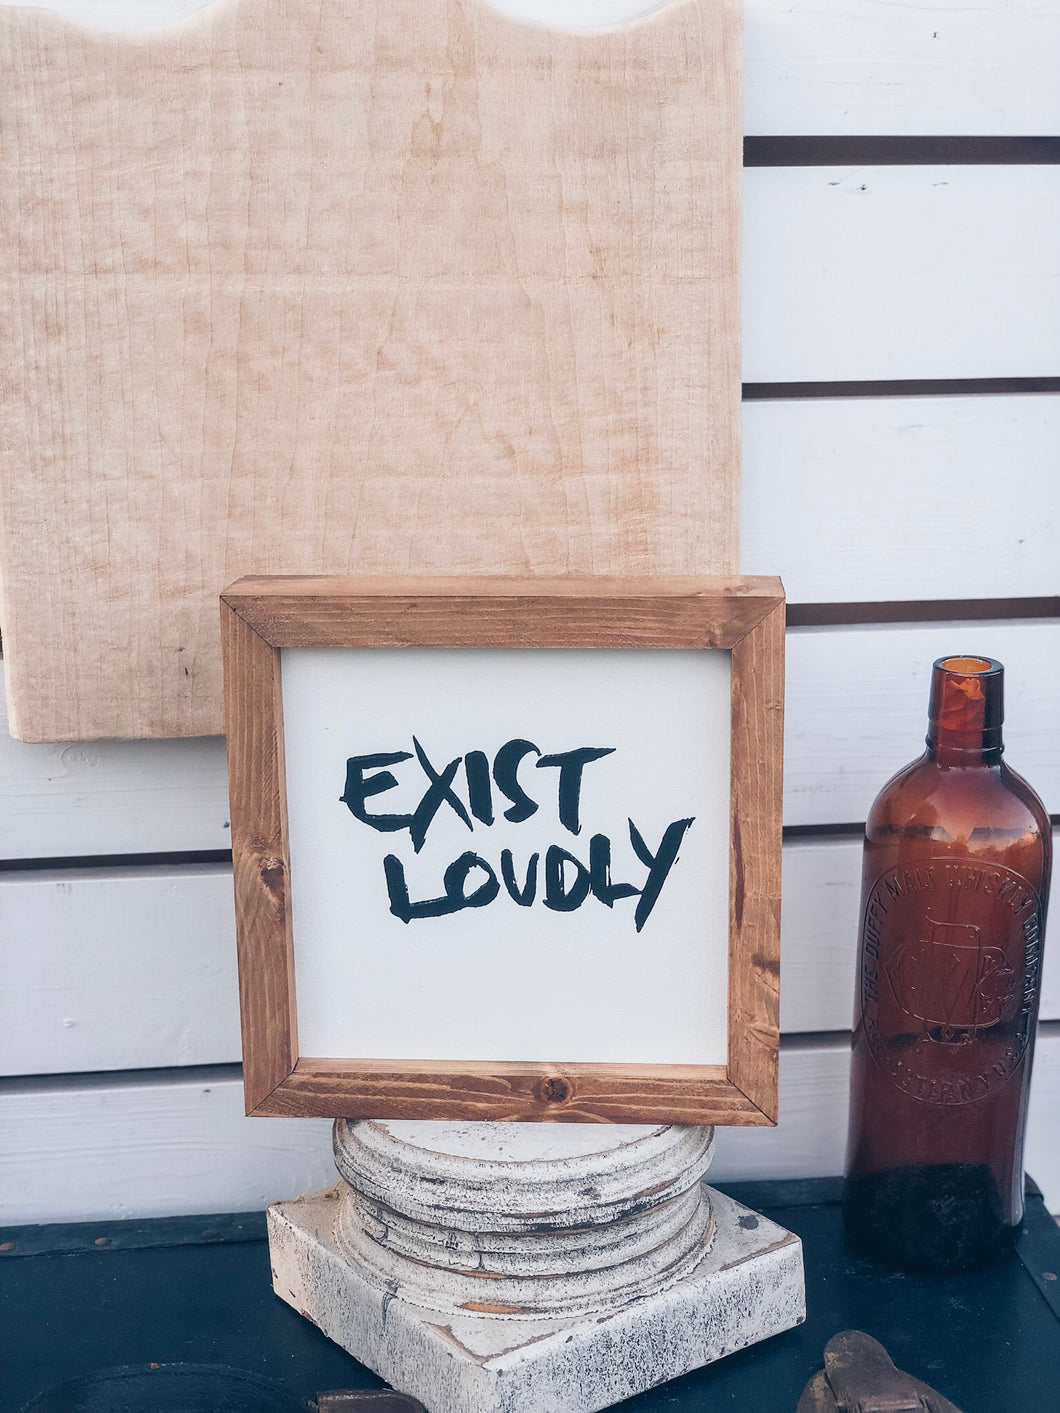 EXIST LOUDLY